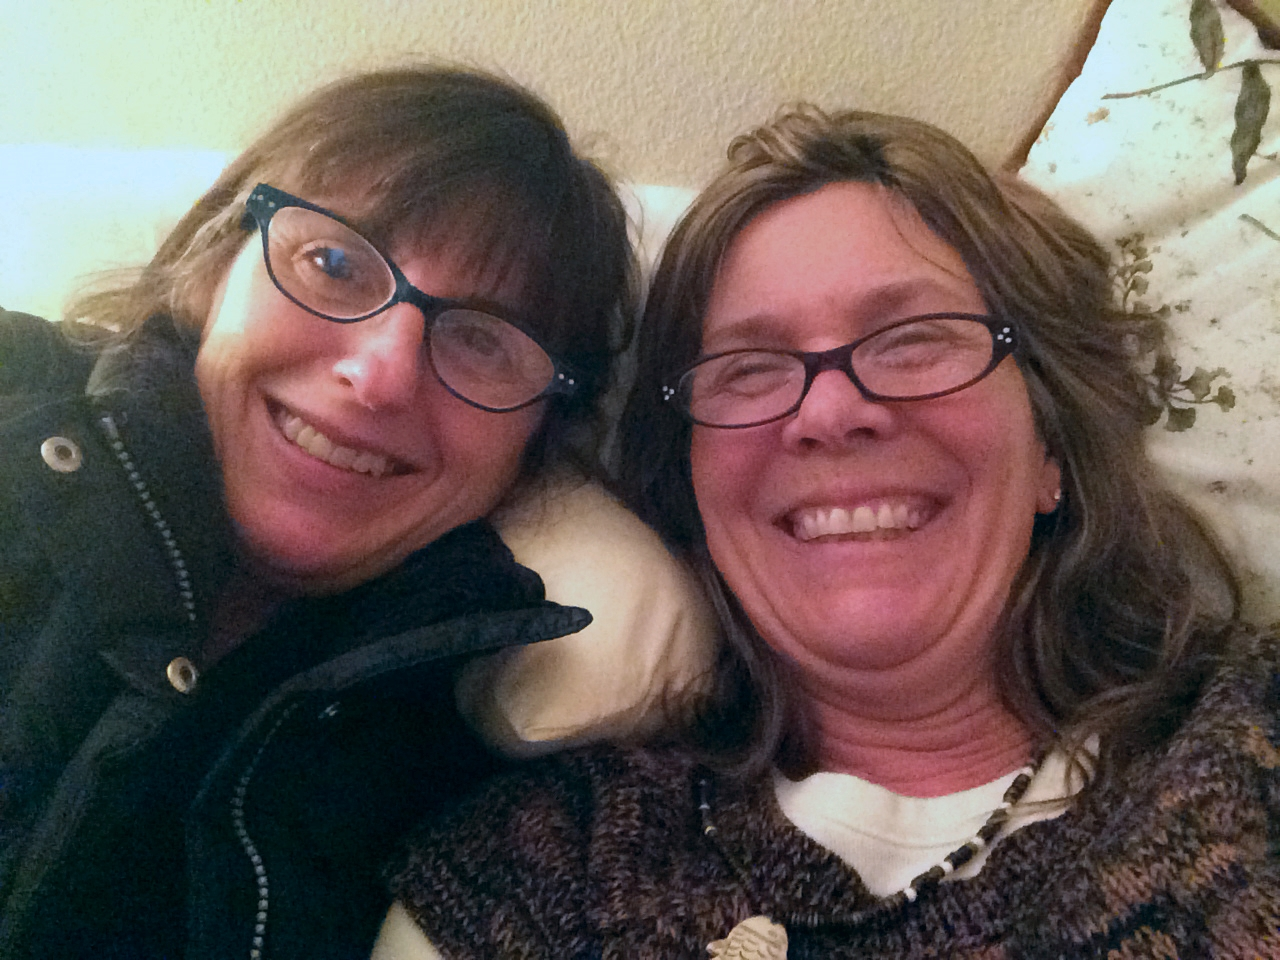 My friend Sandra and I snapped a photo after having one of our solve-the-problems-of-the-world conversations.